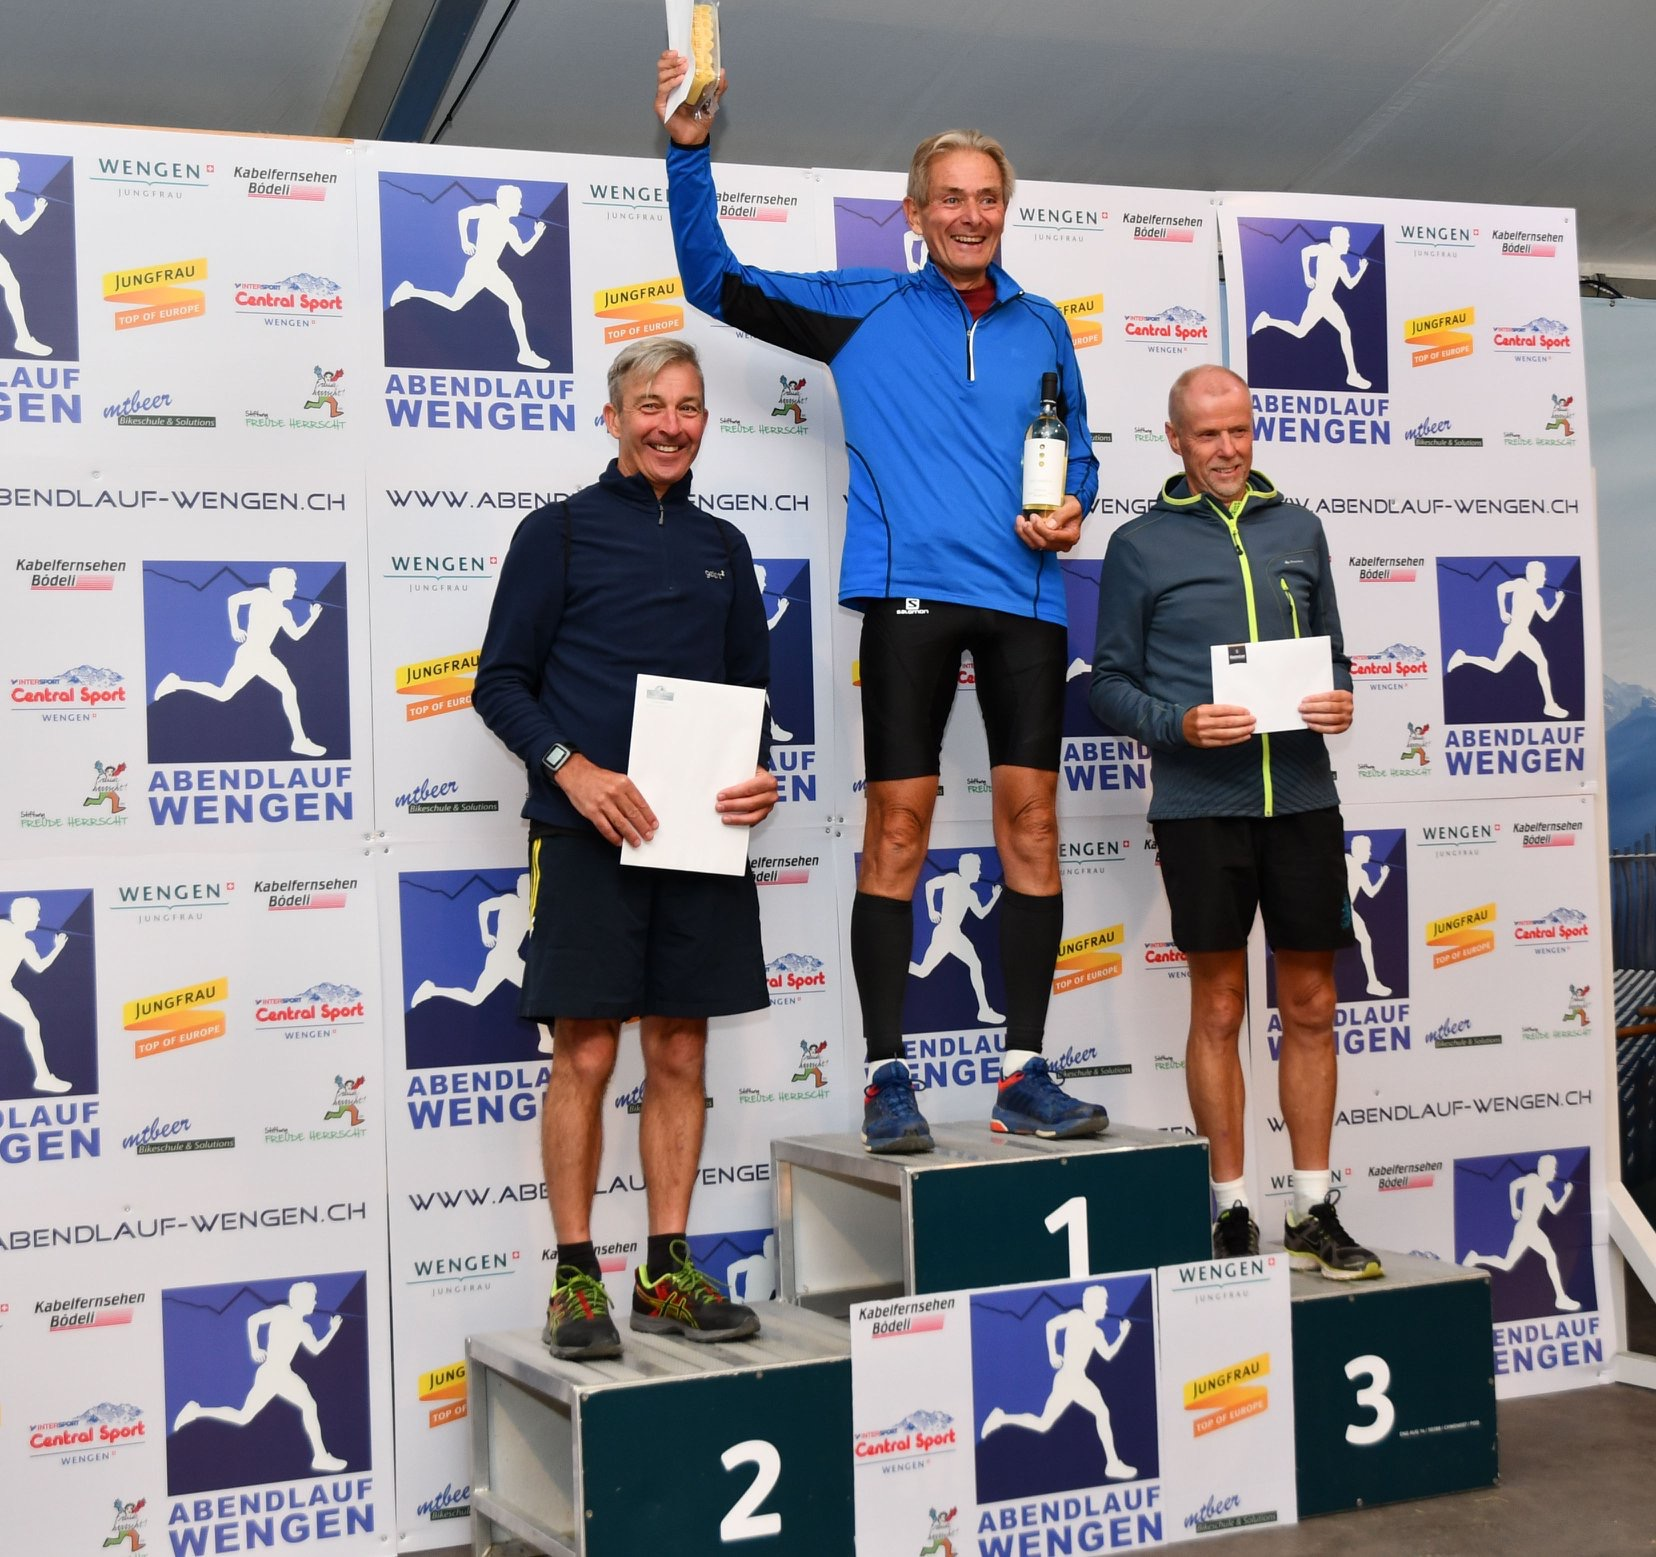 Les Abbott and his Remarkable Success Story in the Abendlauf Wengen 7.7k